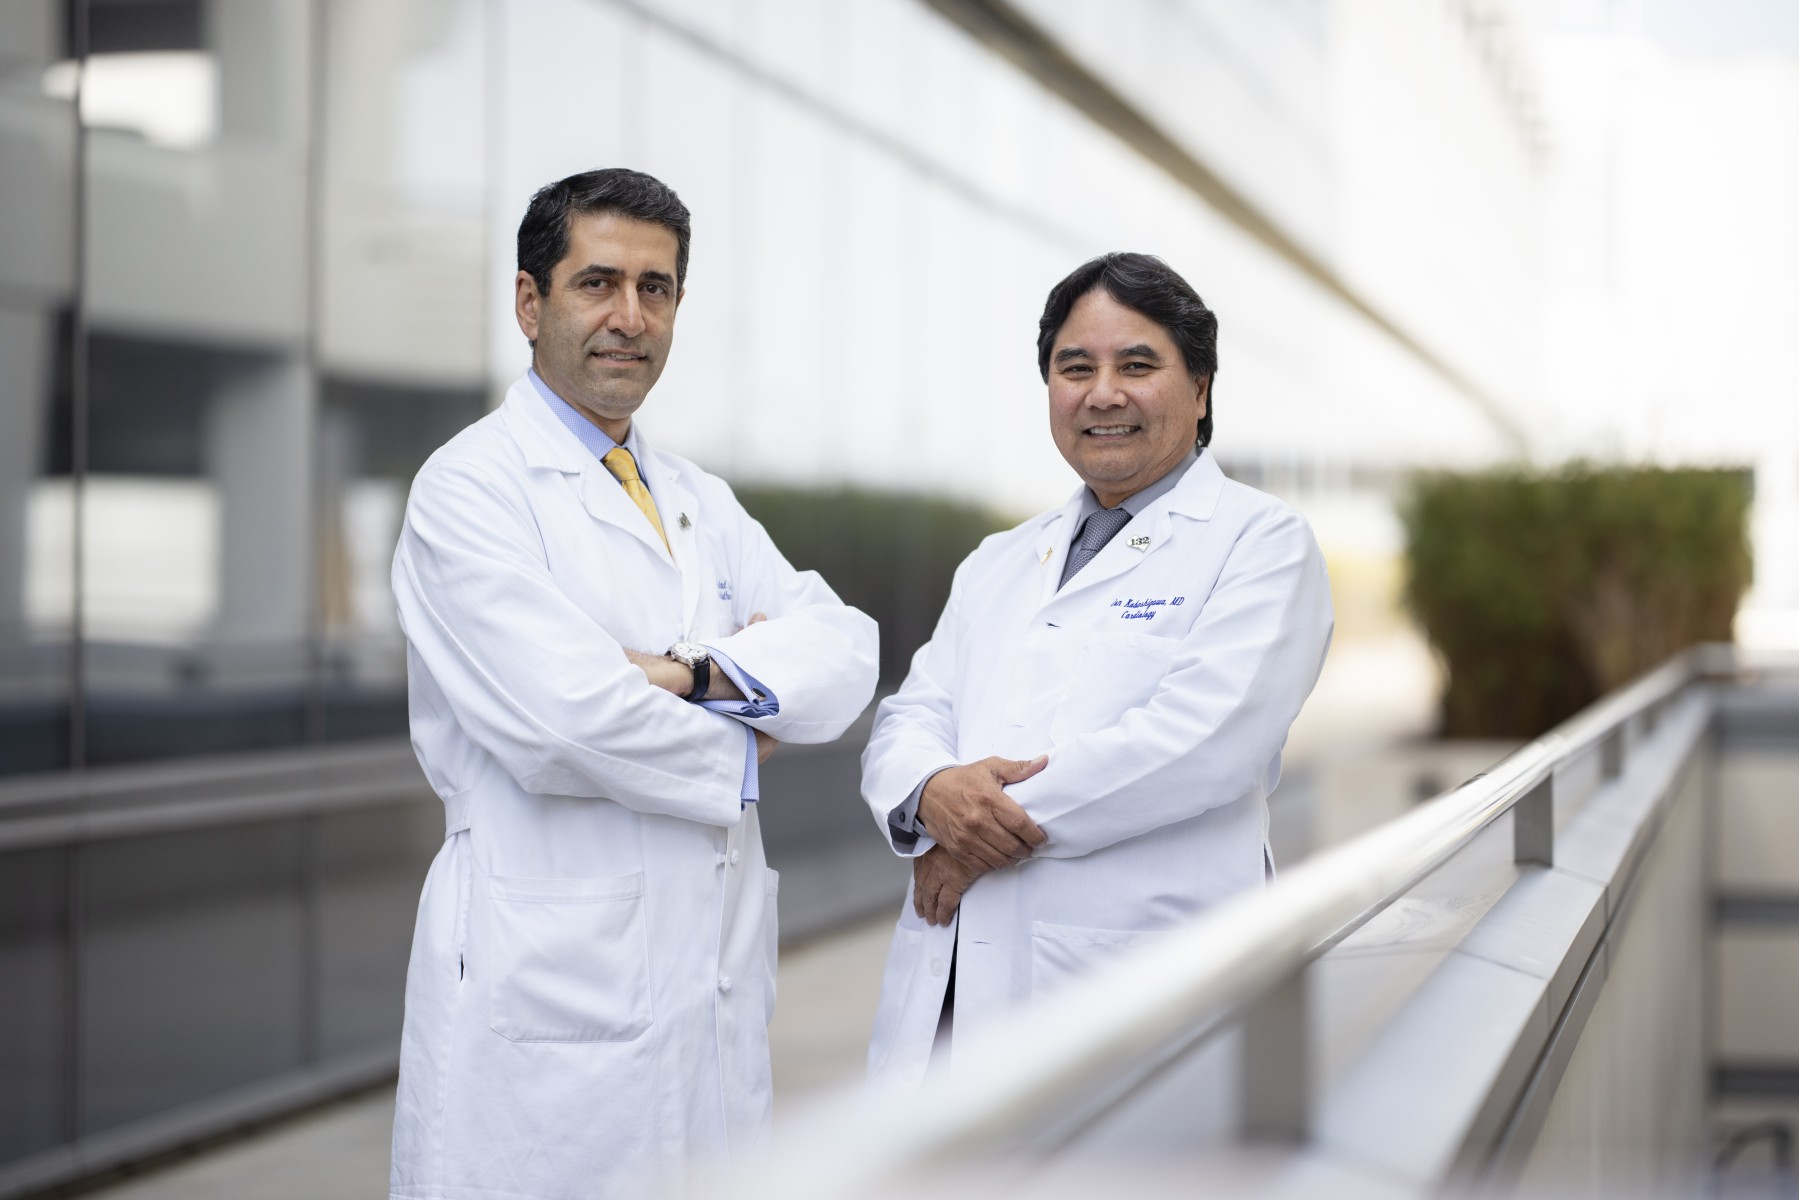 Cardiothoracic surgeon Fardad Esmailian, MD, on the left, with Jon Kobashigawa, MD,  director of heart transplant. Photo by Cedars-Sinai.